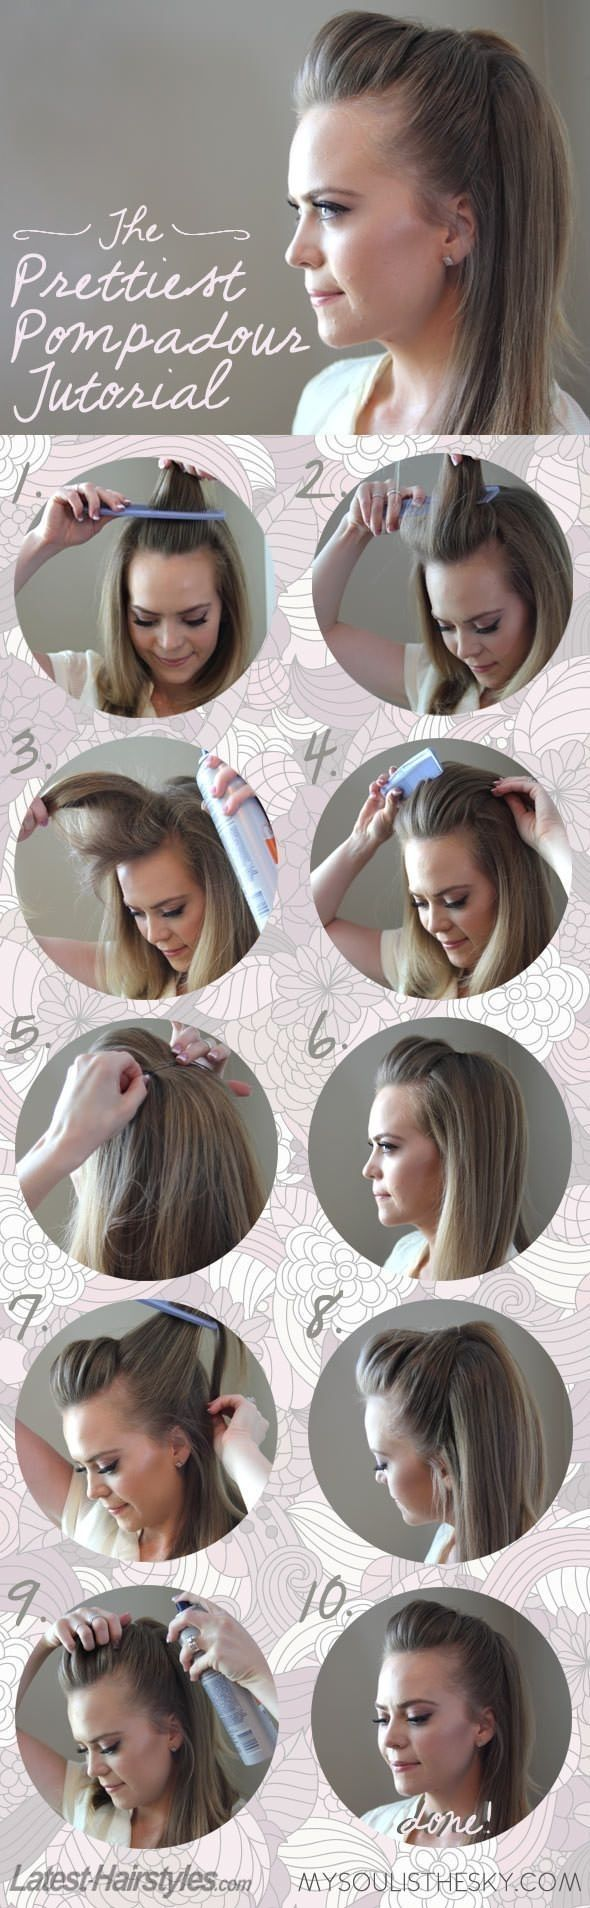 Very wonderful tips on hairstyles for long thick hair all the